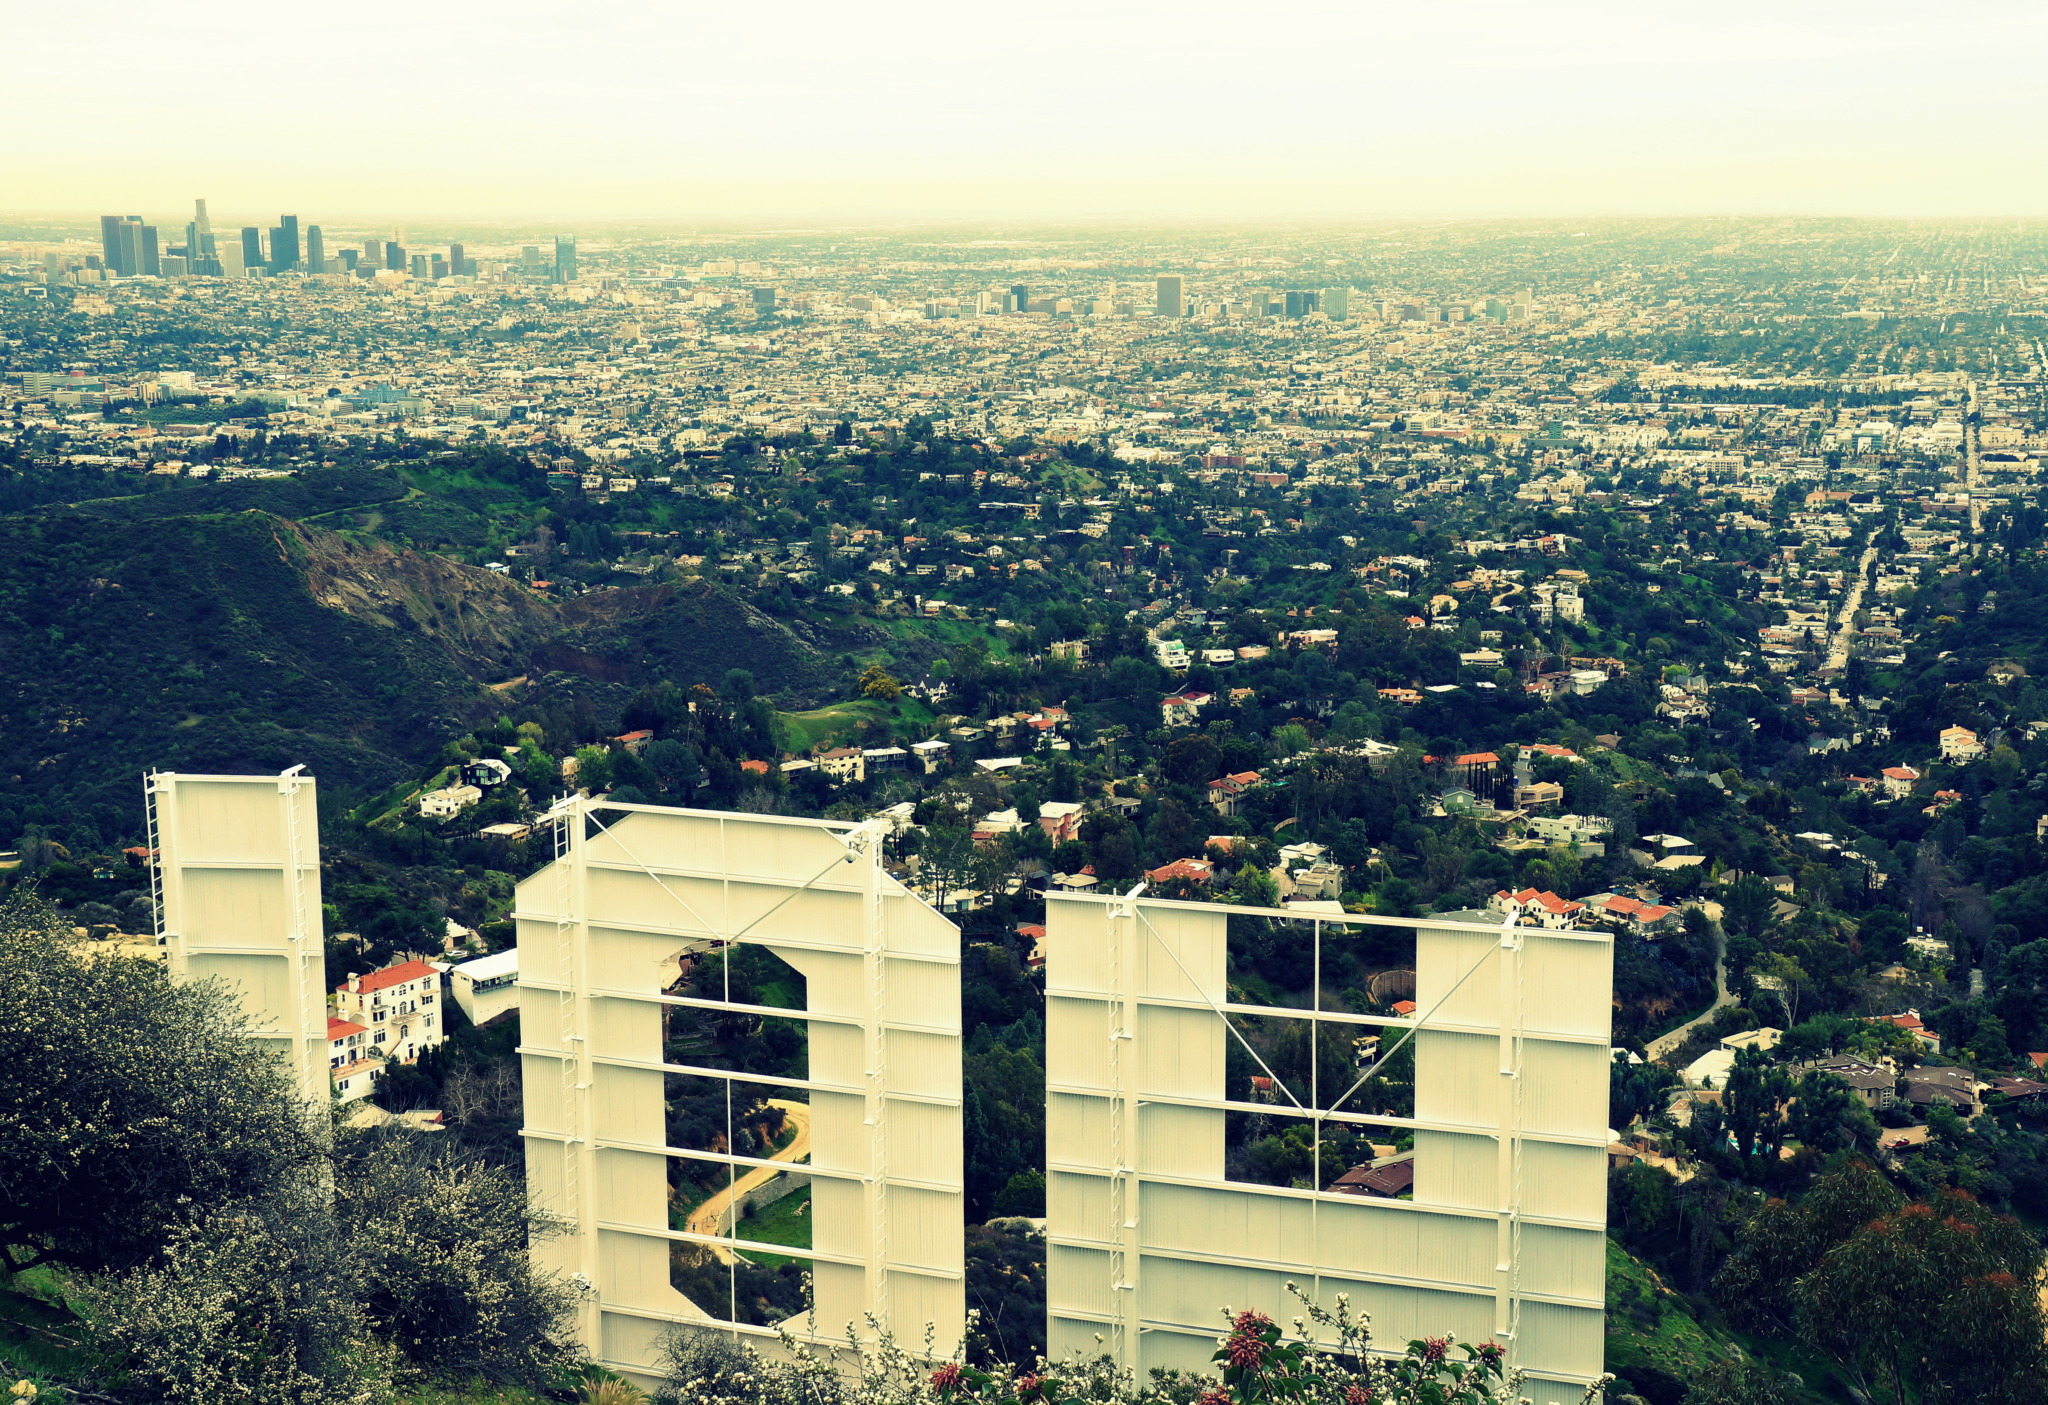 photo take from behind the Hollywood sign overlooking Los Angeles